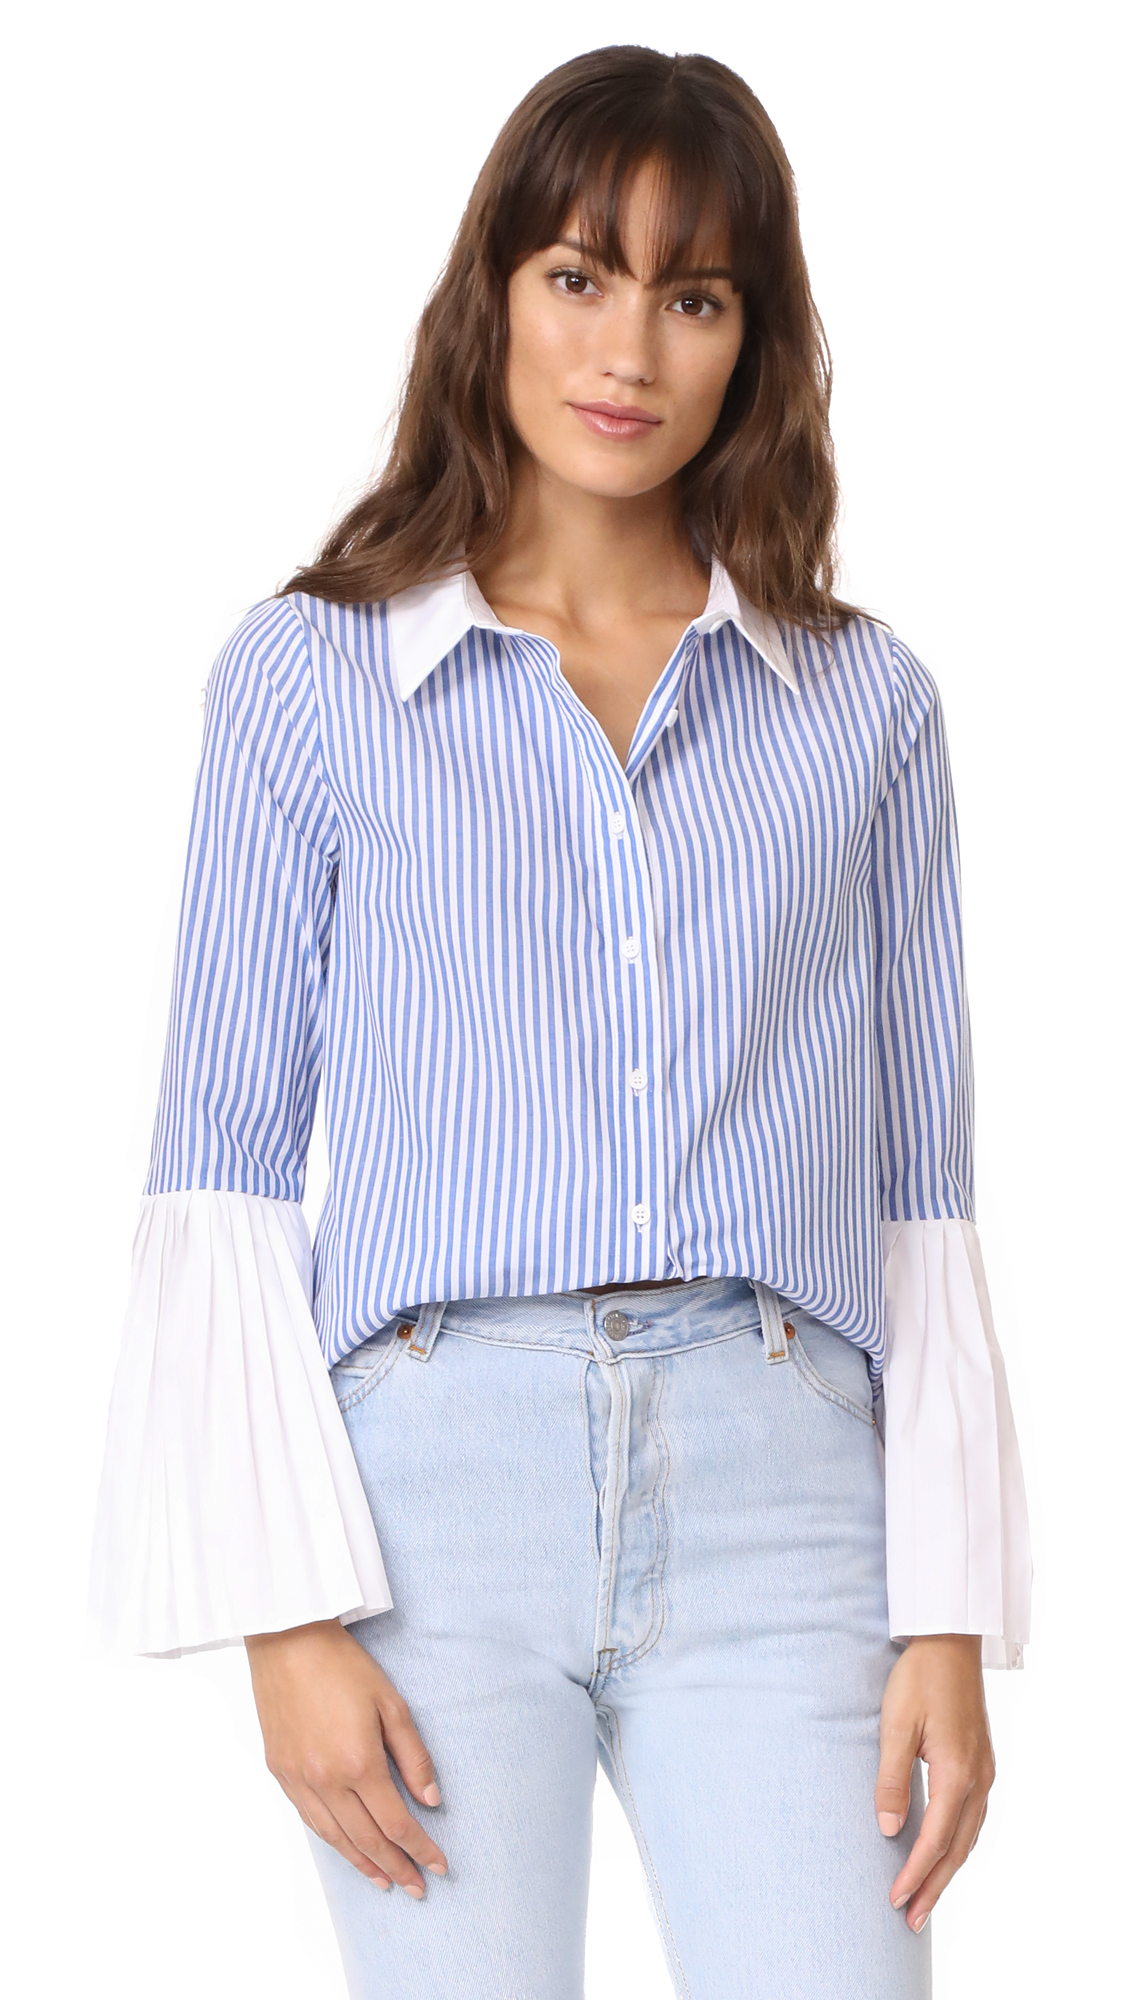 ENGLISH FACTORY Pleated Sleeve Blouse - Sapphire Stripe